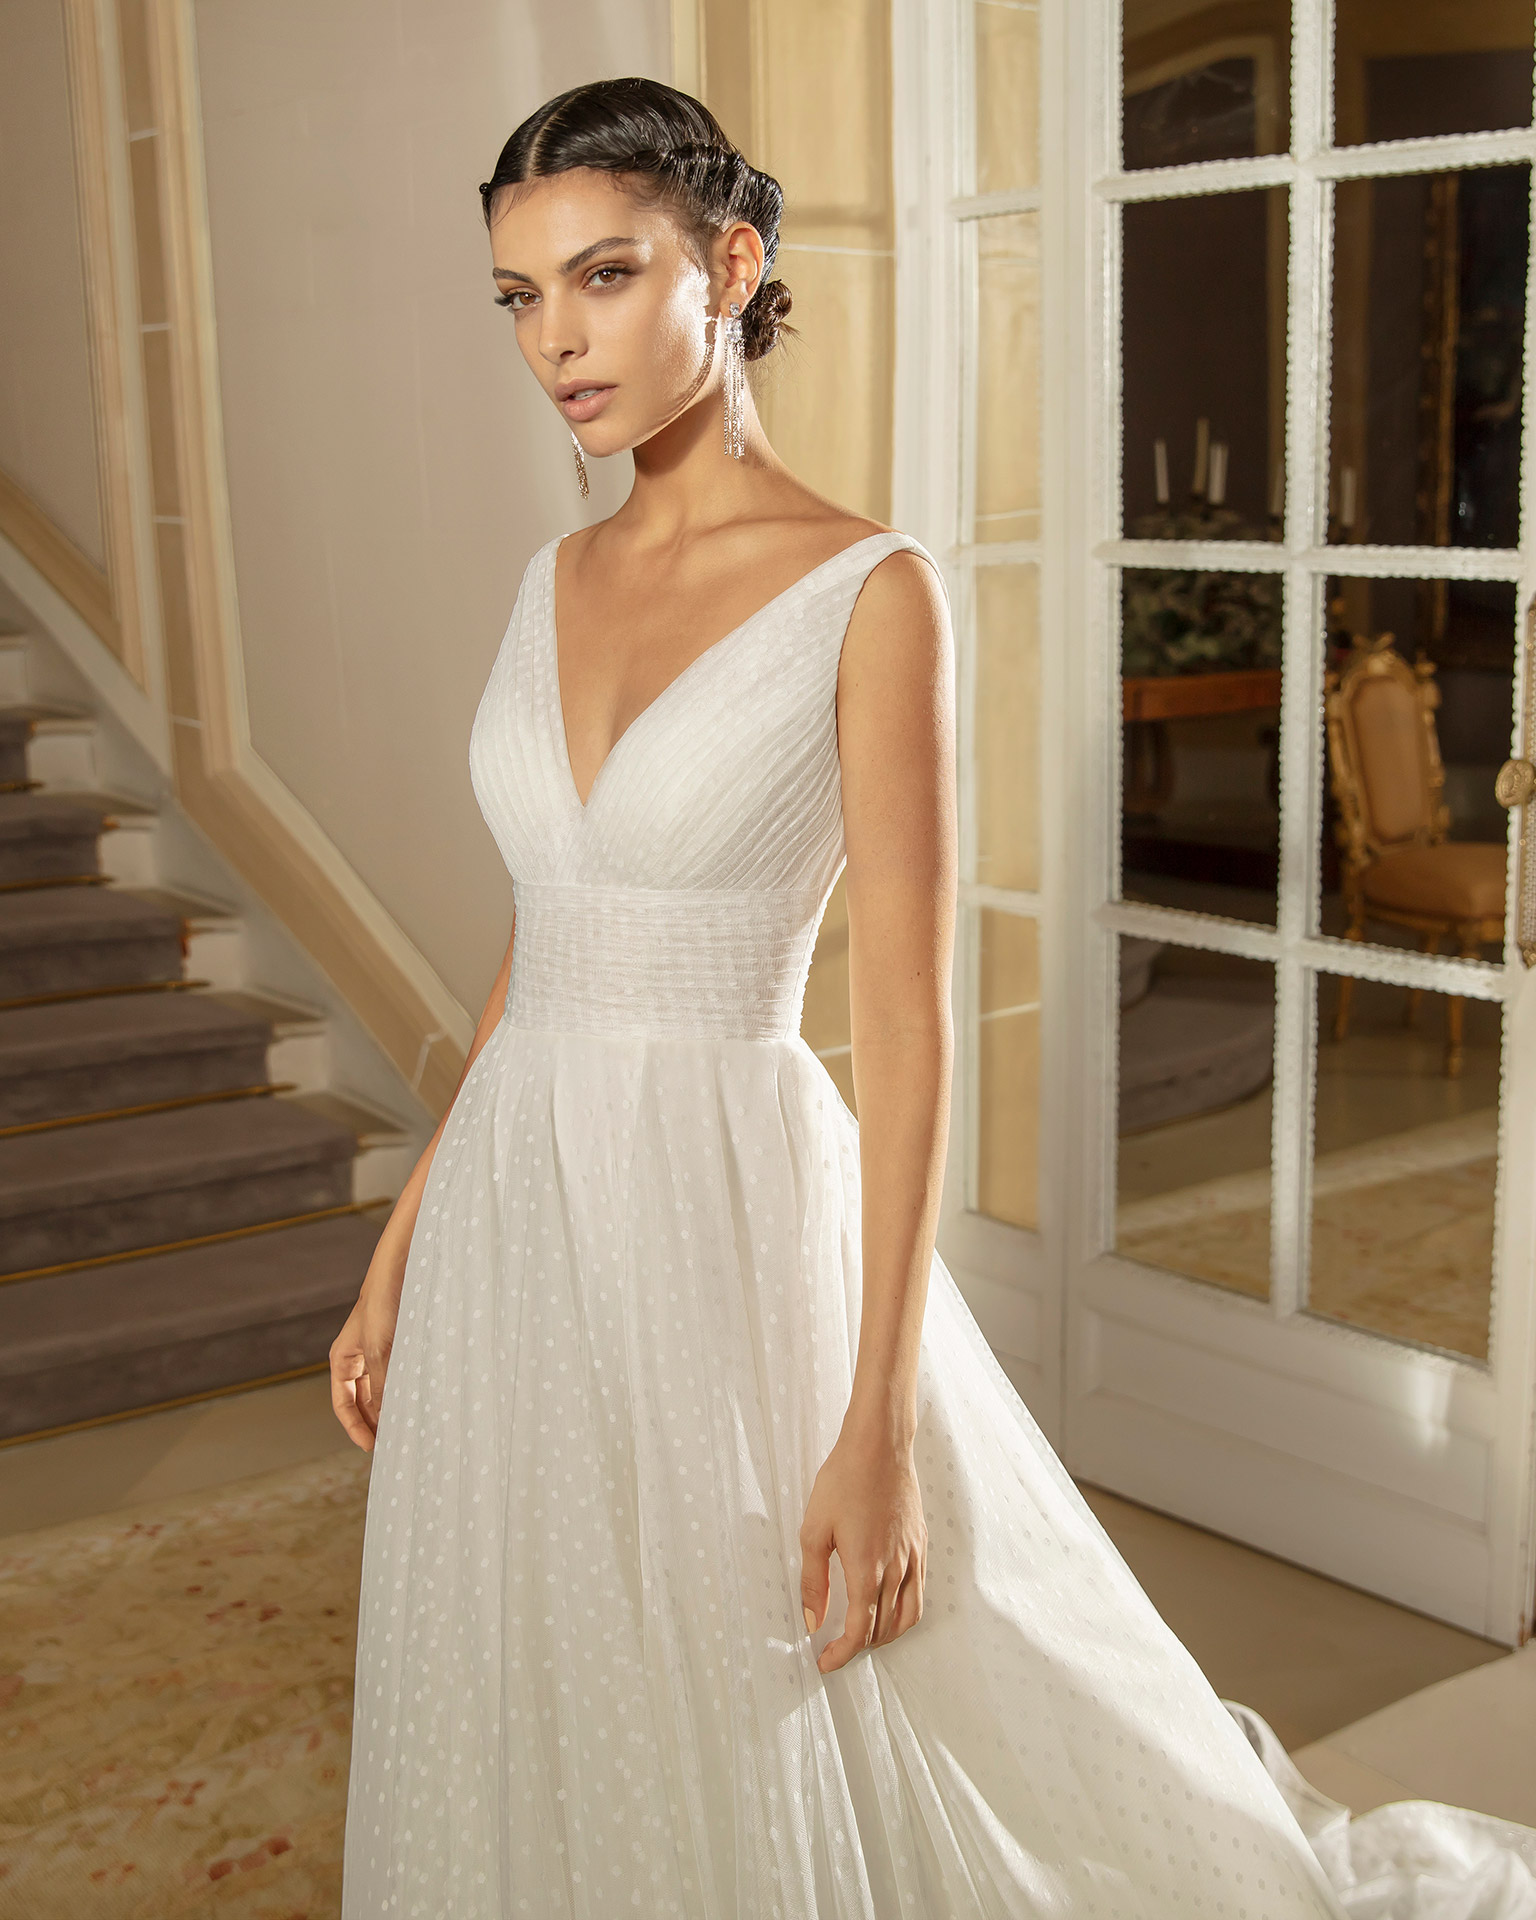 Romantic dot tulle wedding dress with V-neckline and back. 2020 ALMANOVIA Collection.